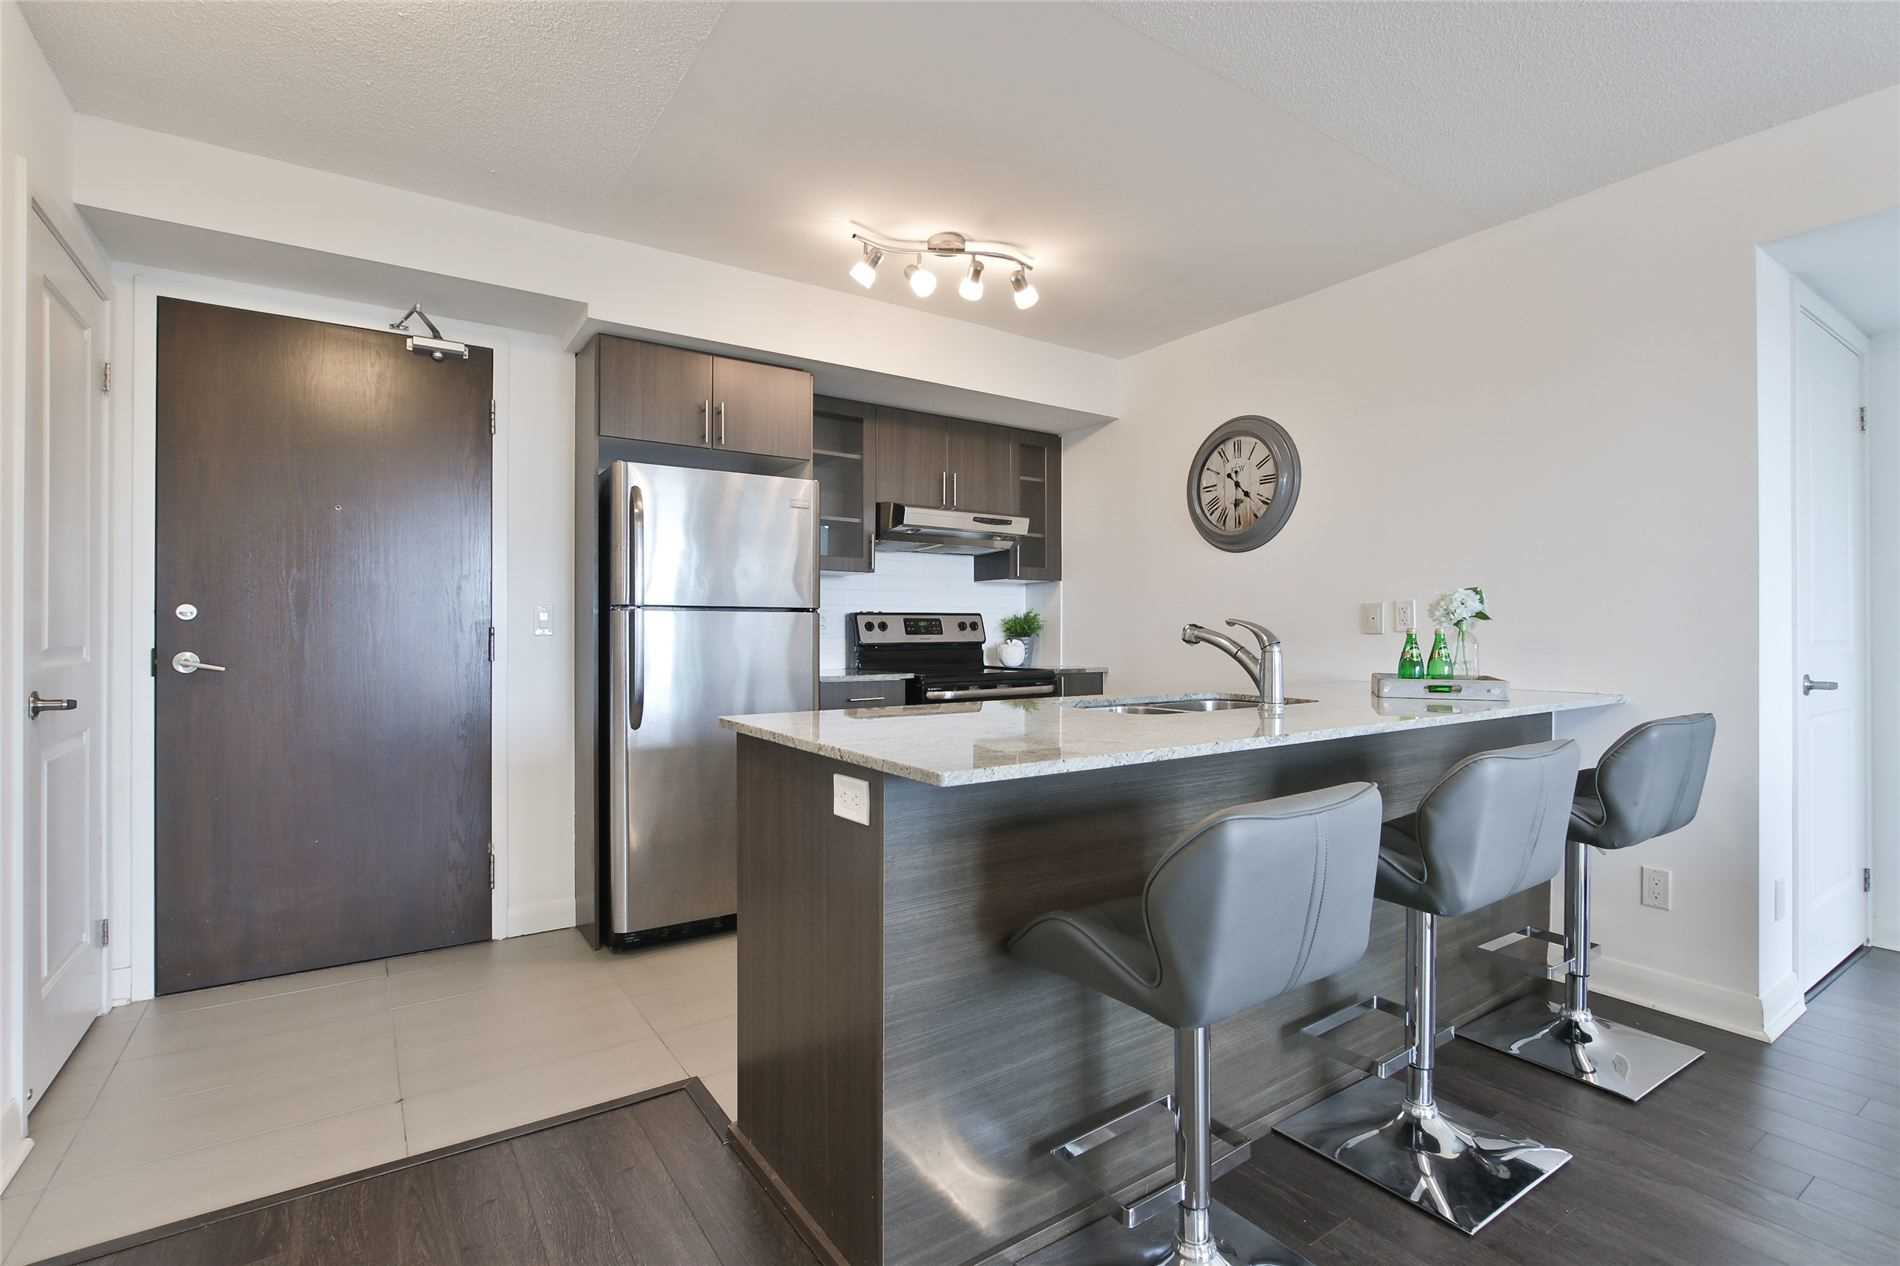 209 - 75 Norman Bethune Ave - Beaver Creek Business Park Condo Apt for sale, 2 Bedrooms (N5305489) - #8